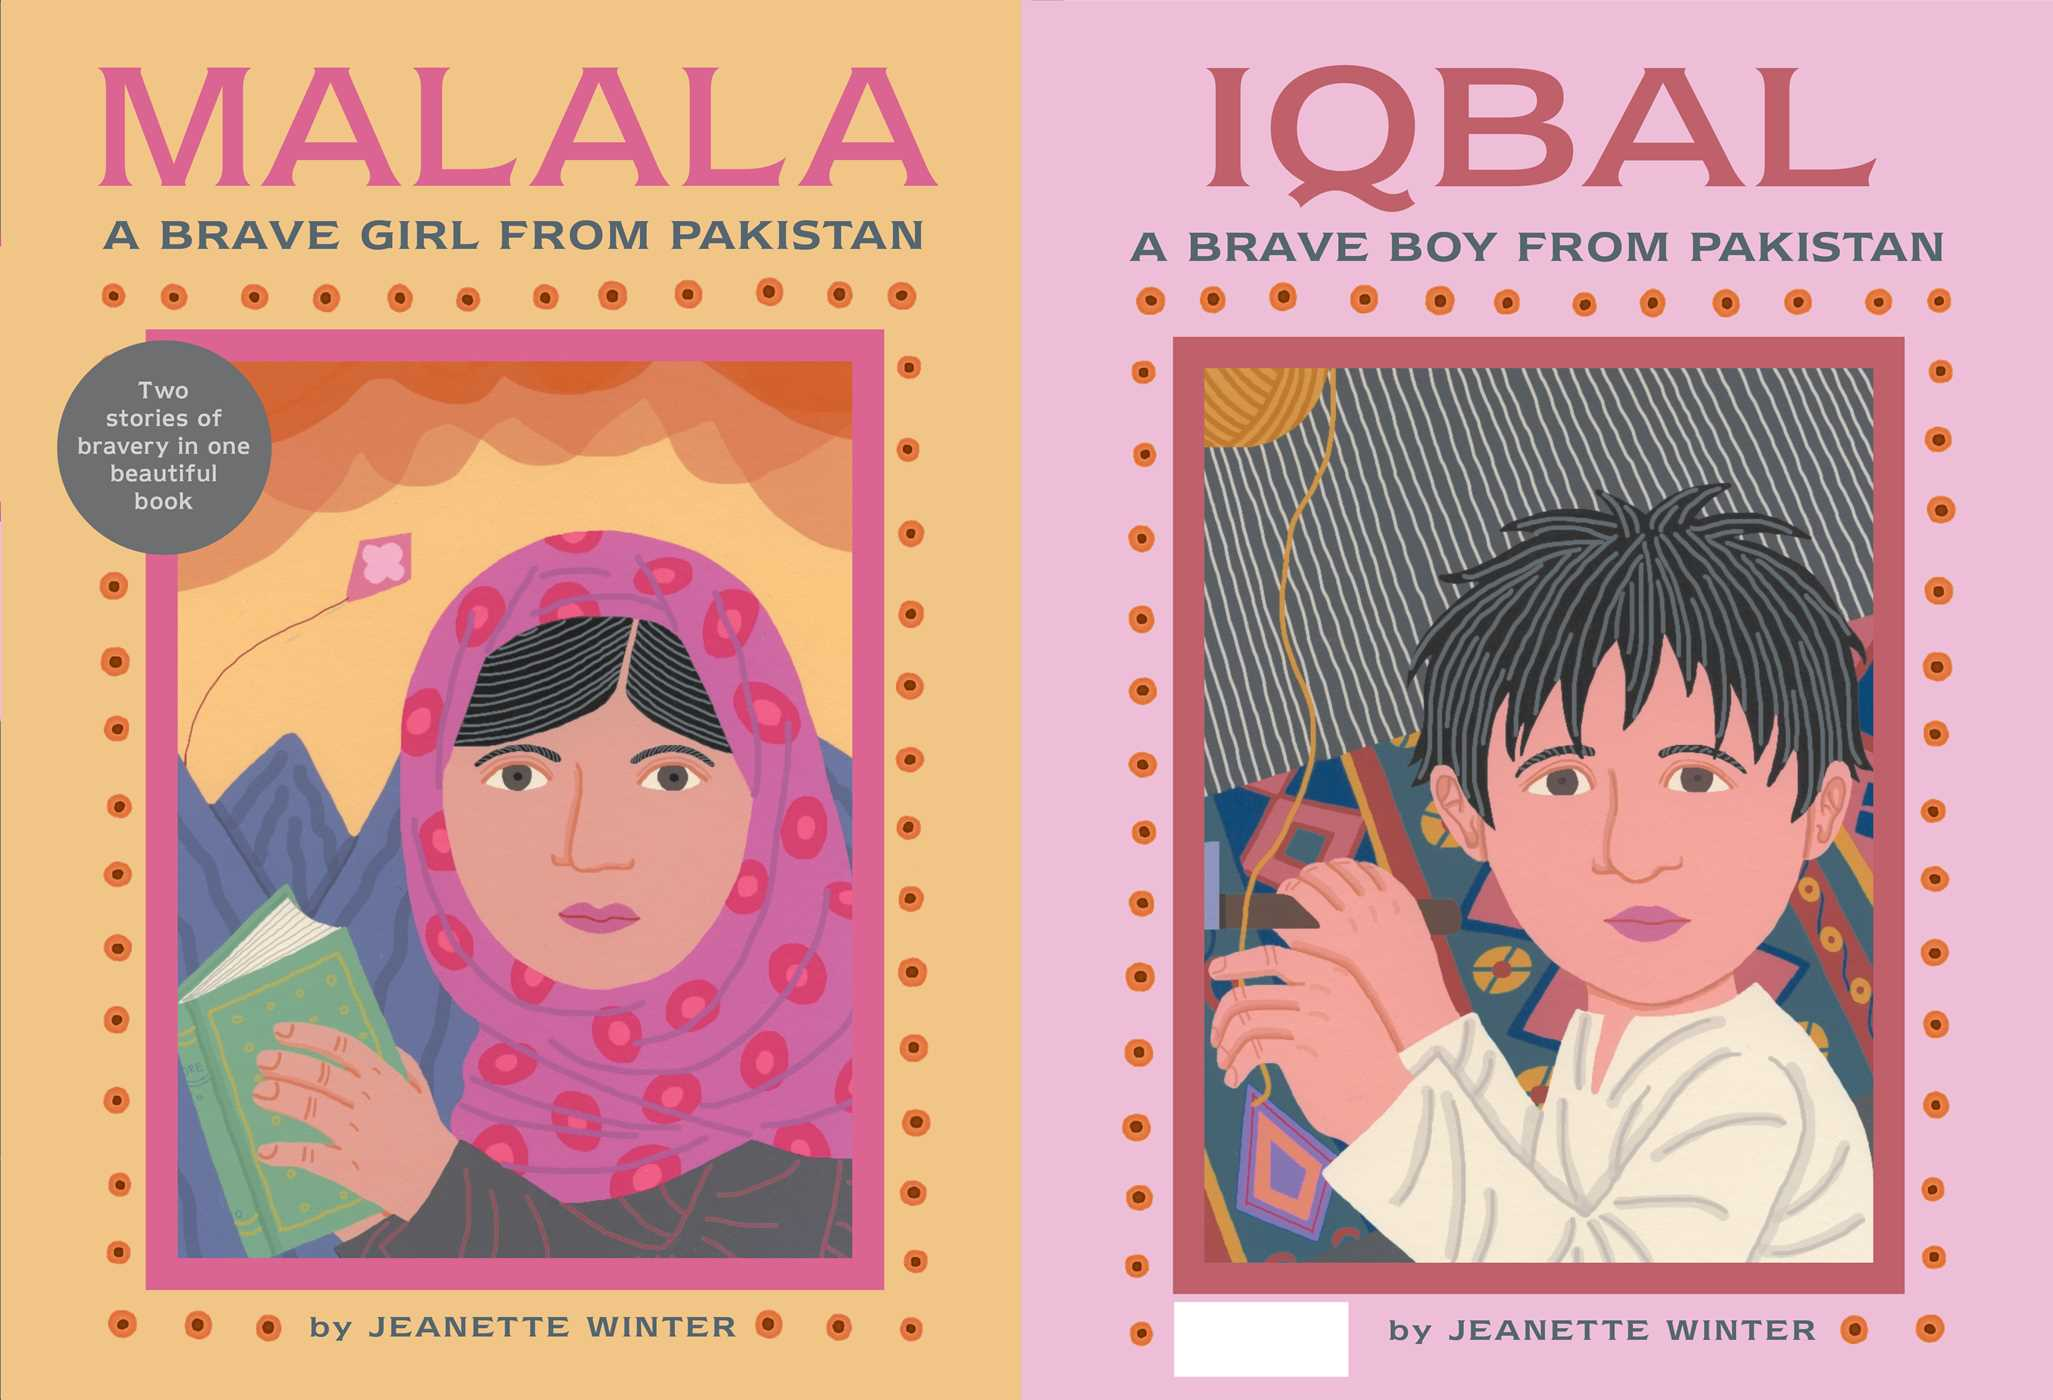 Malala-a-brave-girl-from-pakistan-iqbal-a-brave-9781481422949_hr